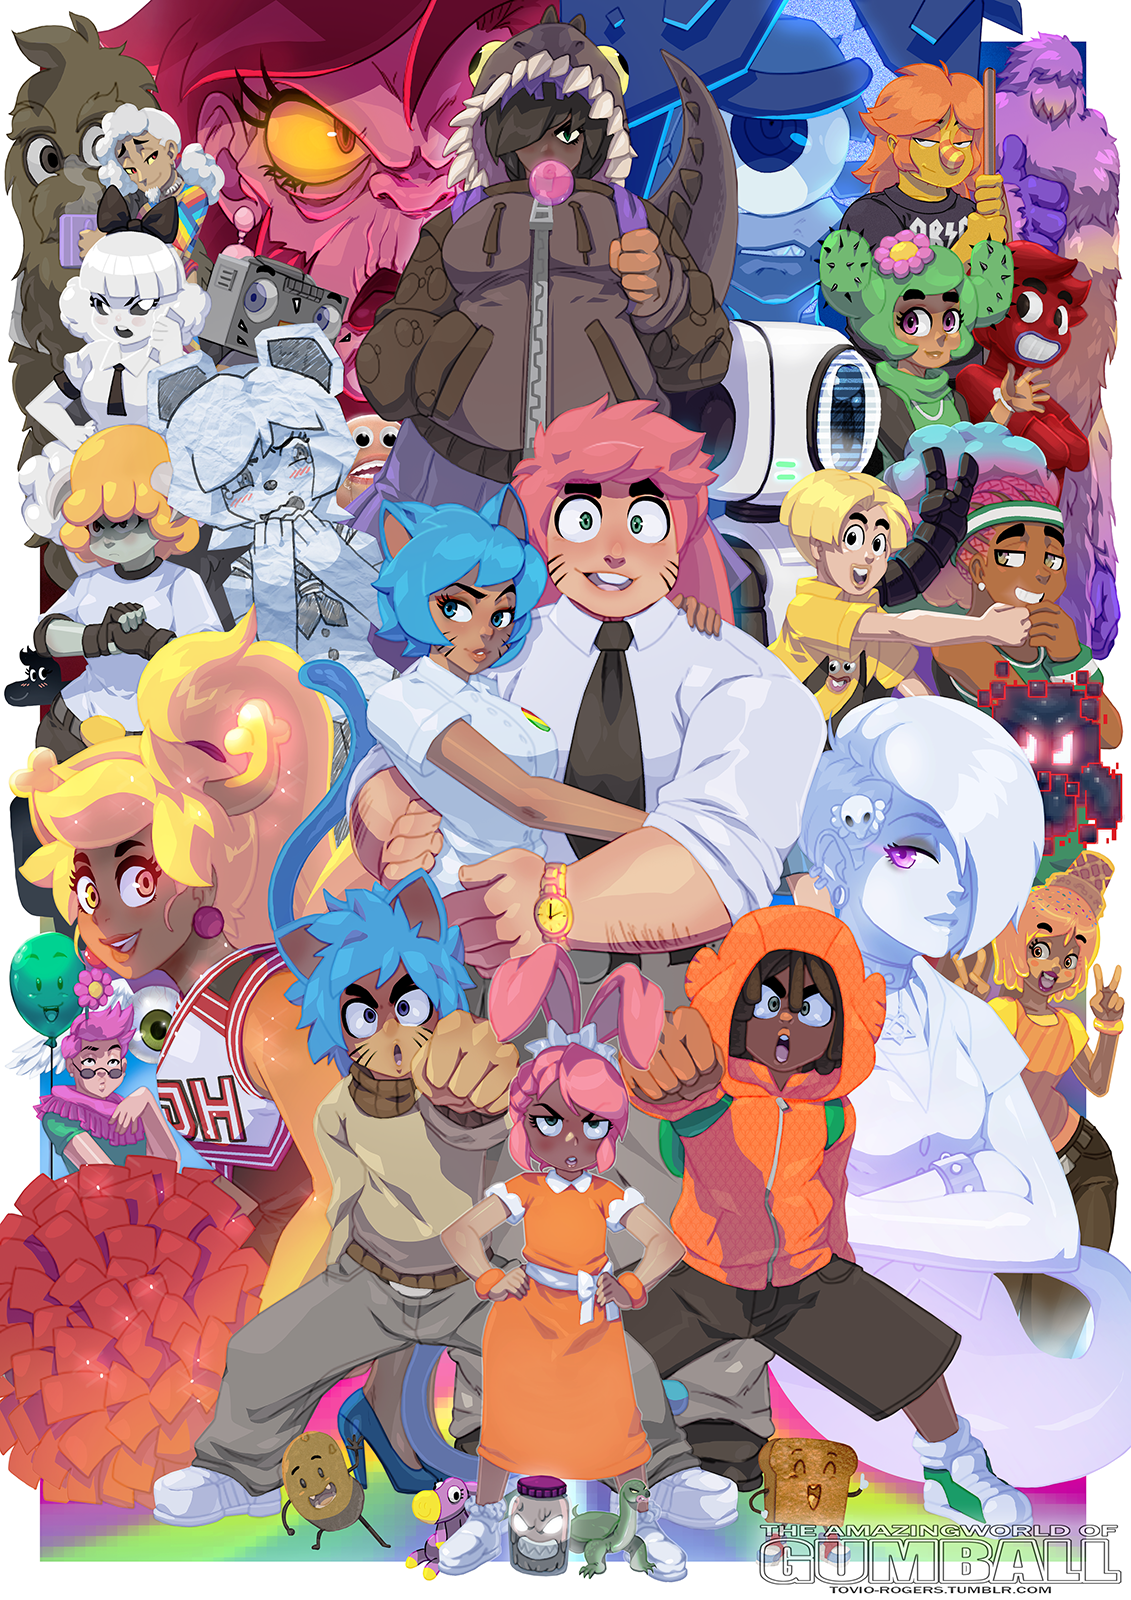 The Humanized World Of Gumball By Tovio Rogers The Amazing World Of Gumball Know Your Meme